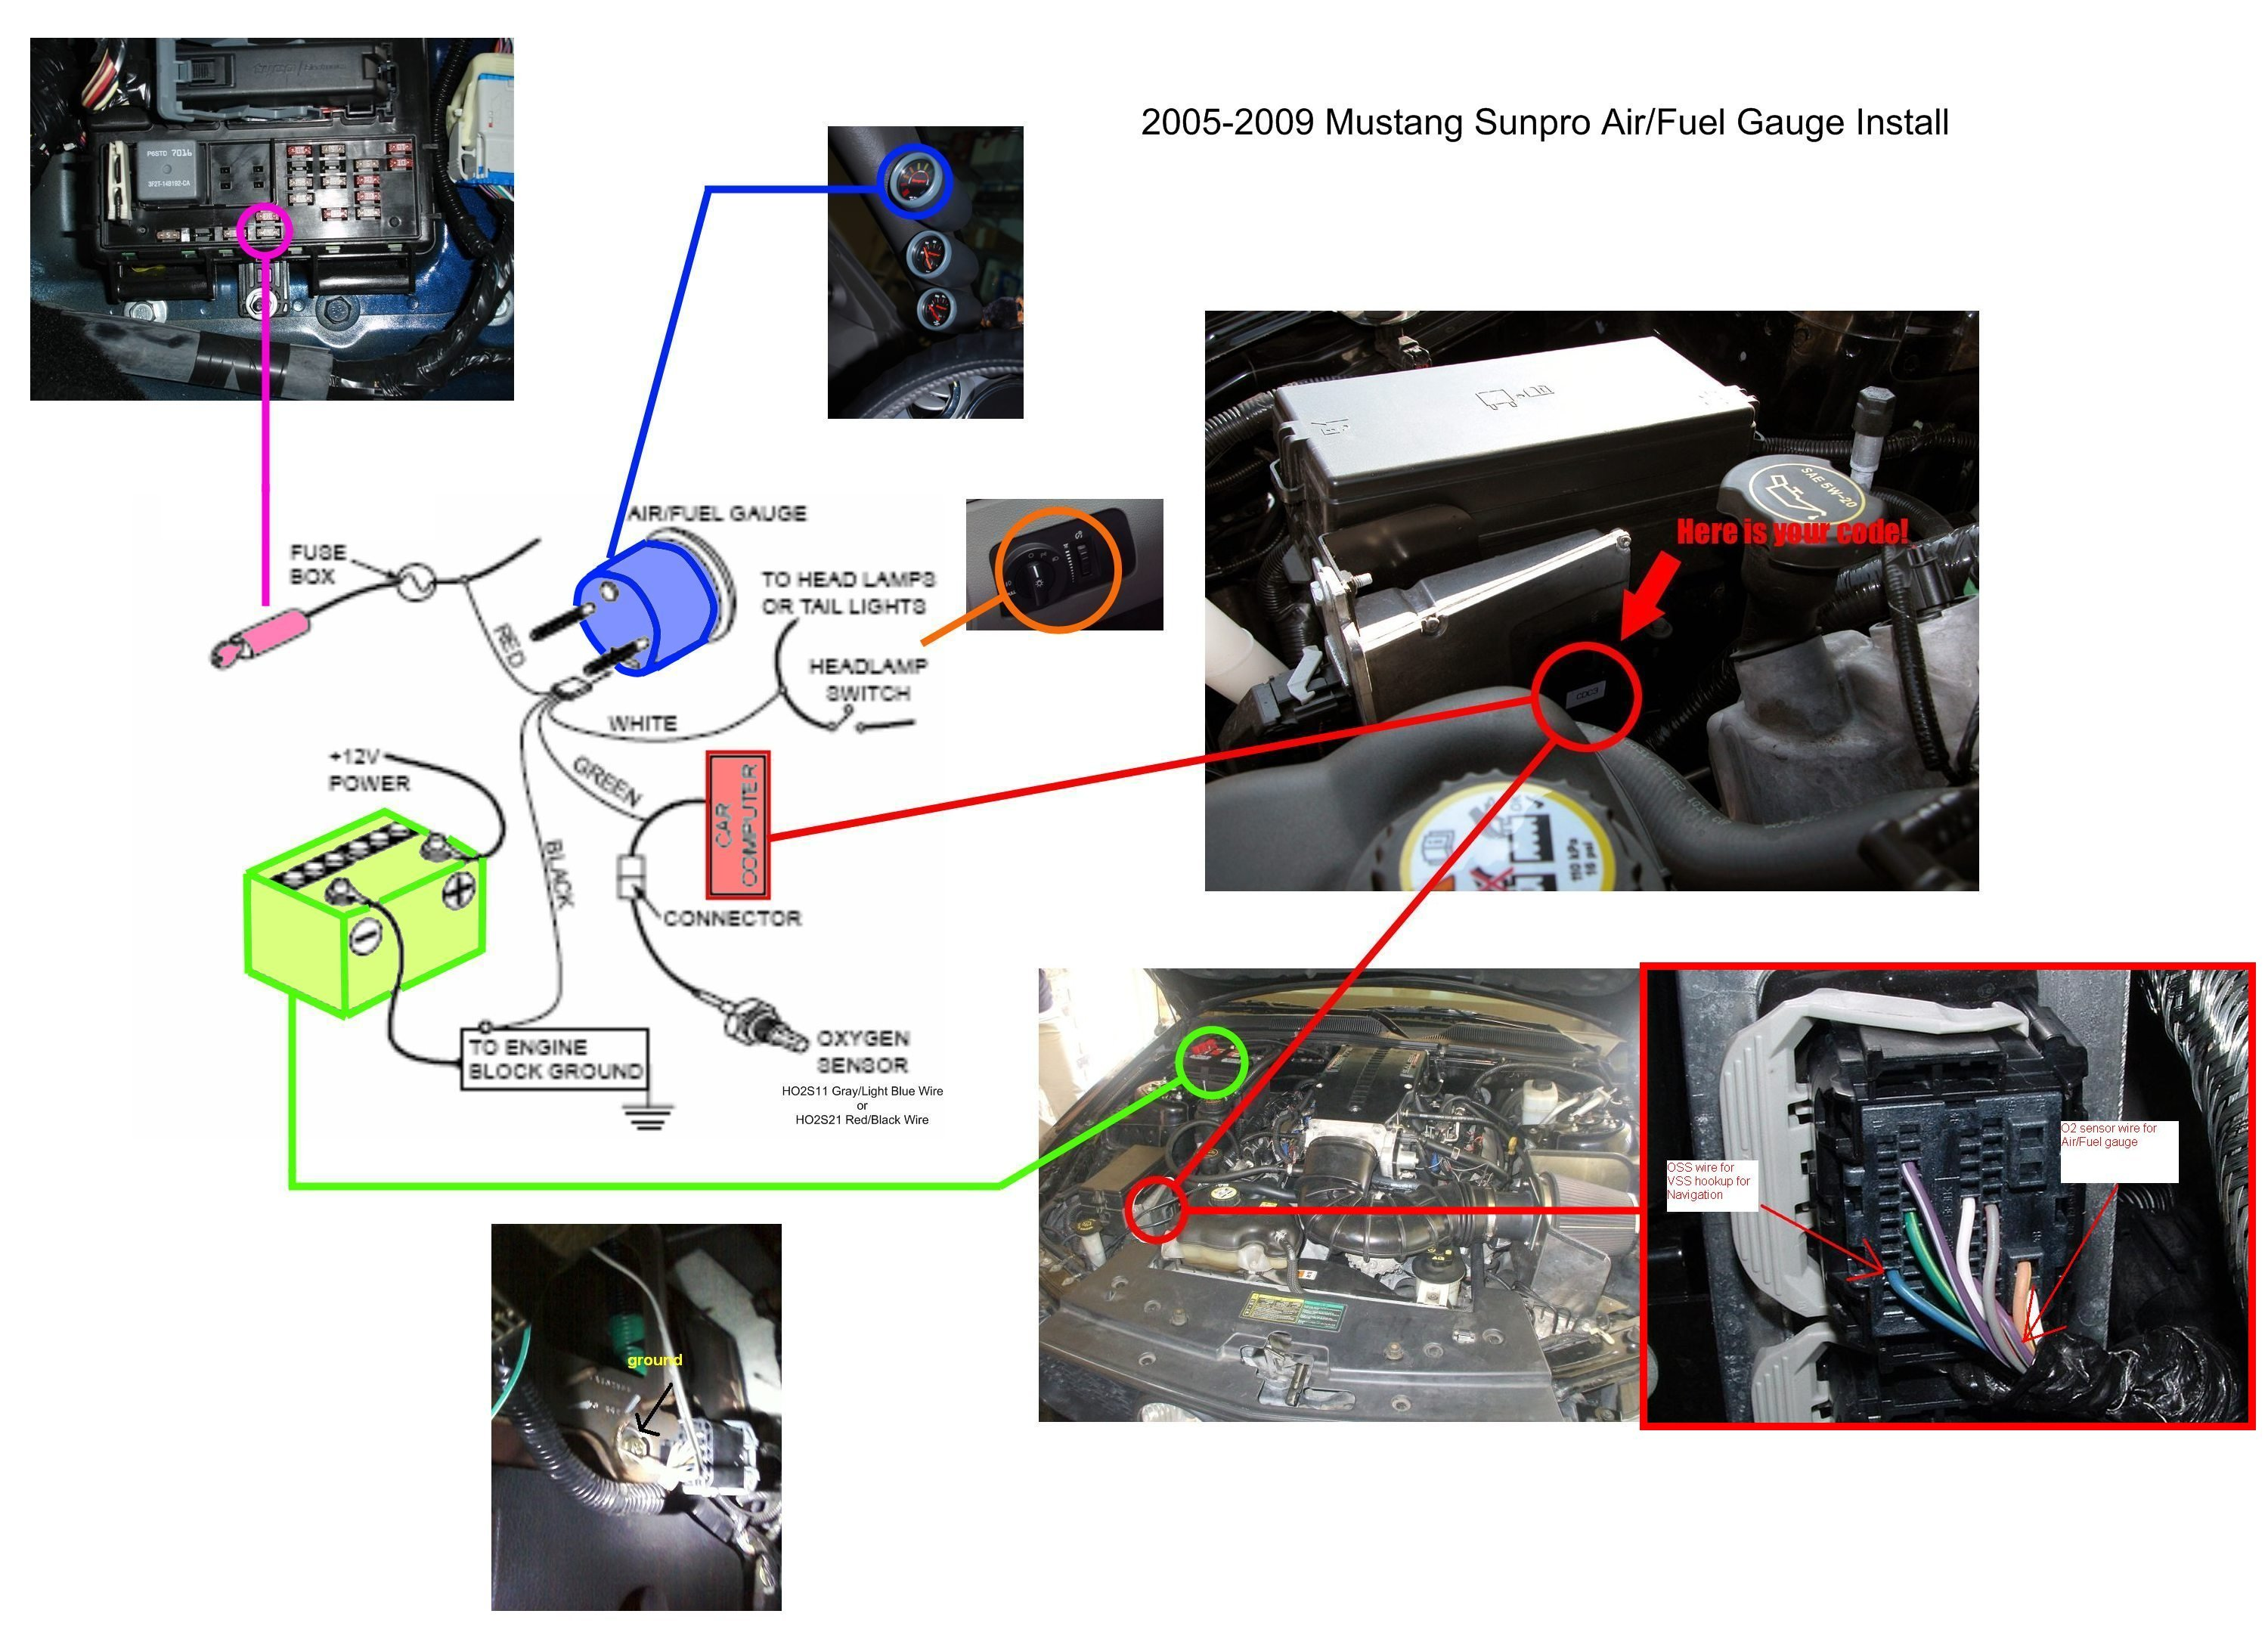 fpv gauge wiring diagram 1965 mustang fastback rpm 06 best library click image for larger version name air fuel jpg views 11064